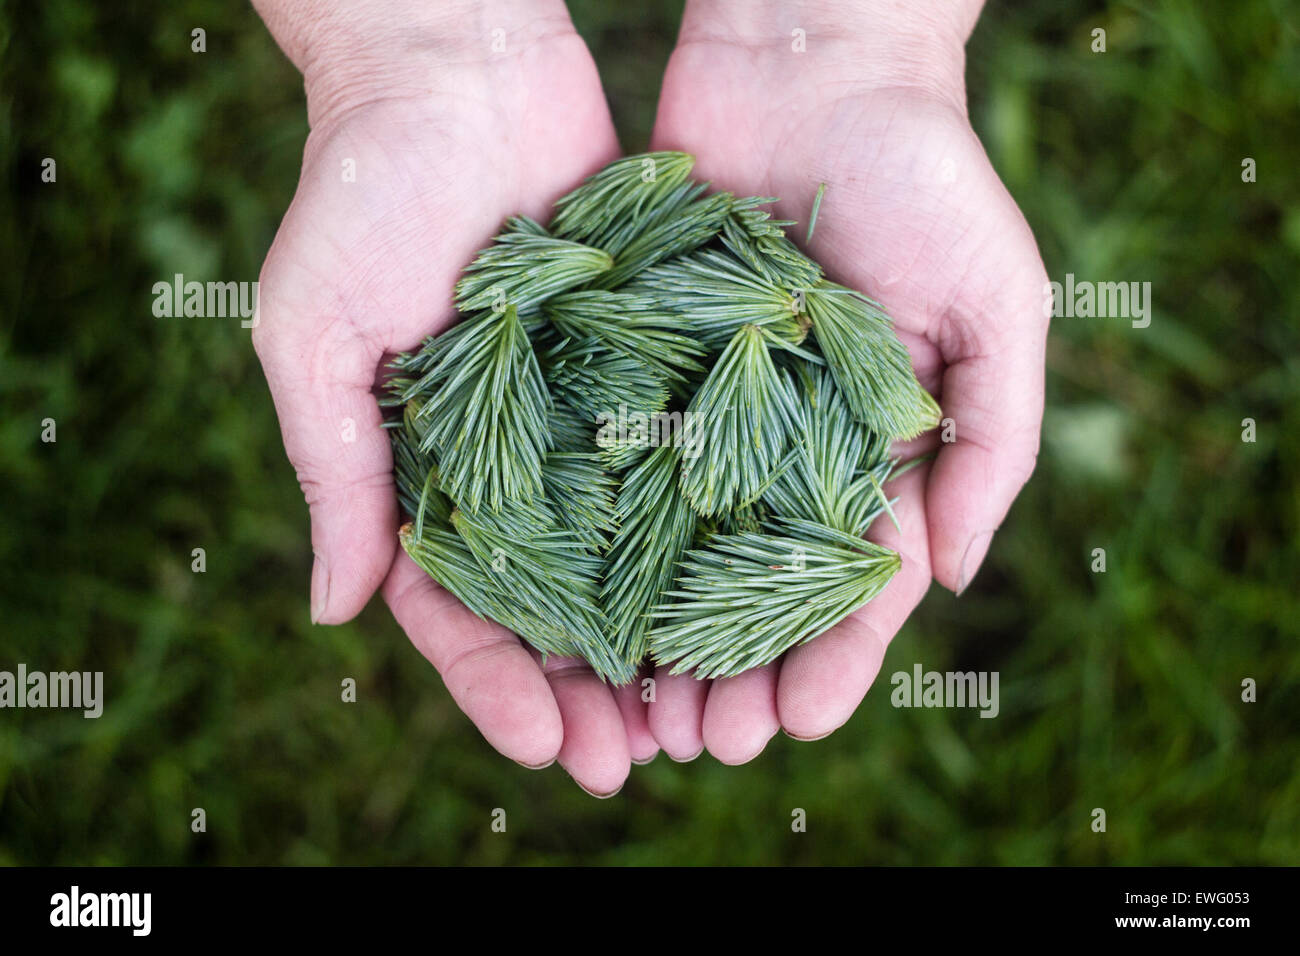 Two Hands Holding Pine Clippings - Stock Image